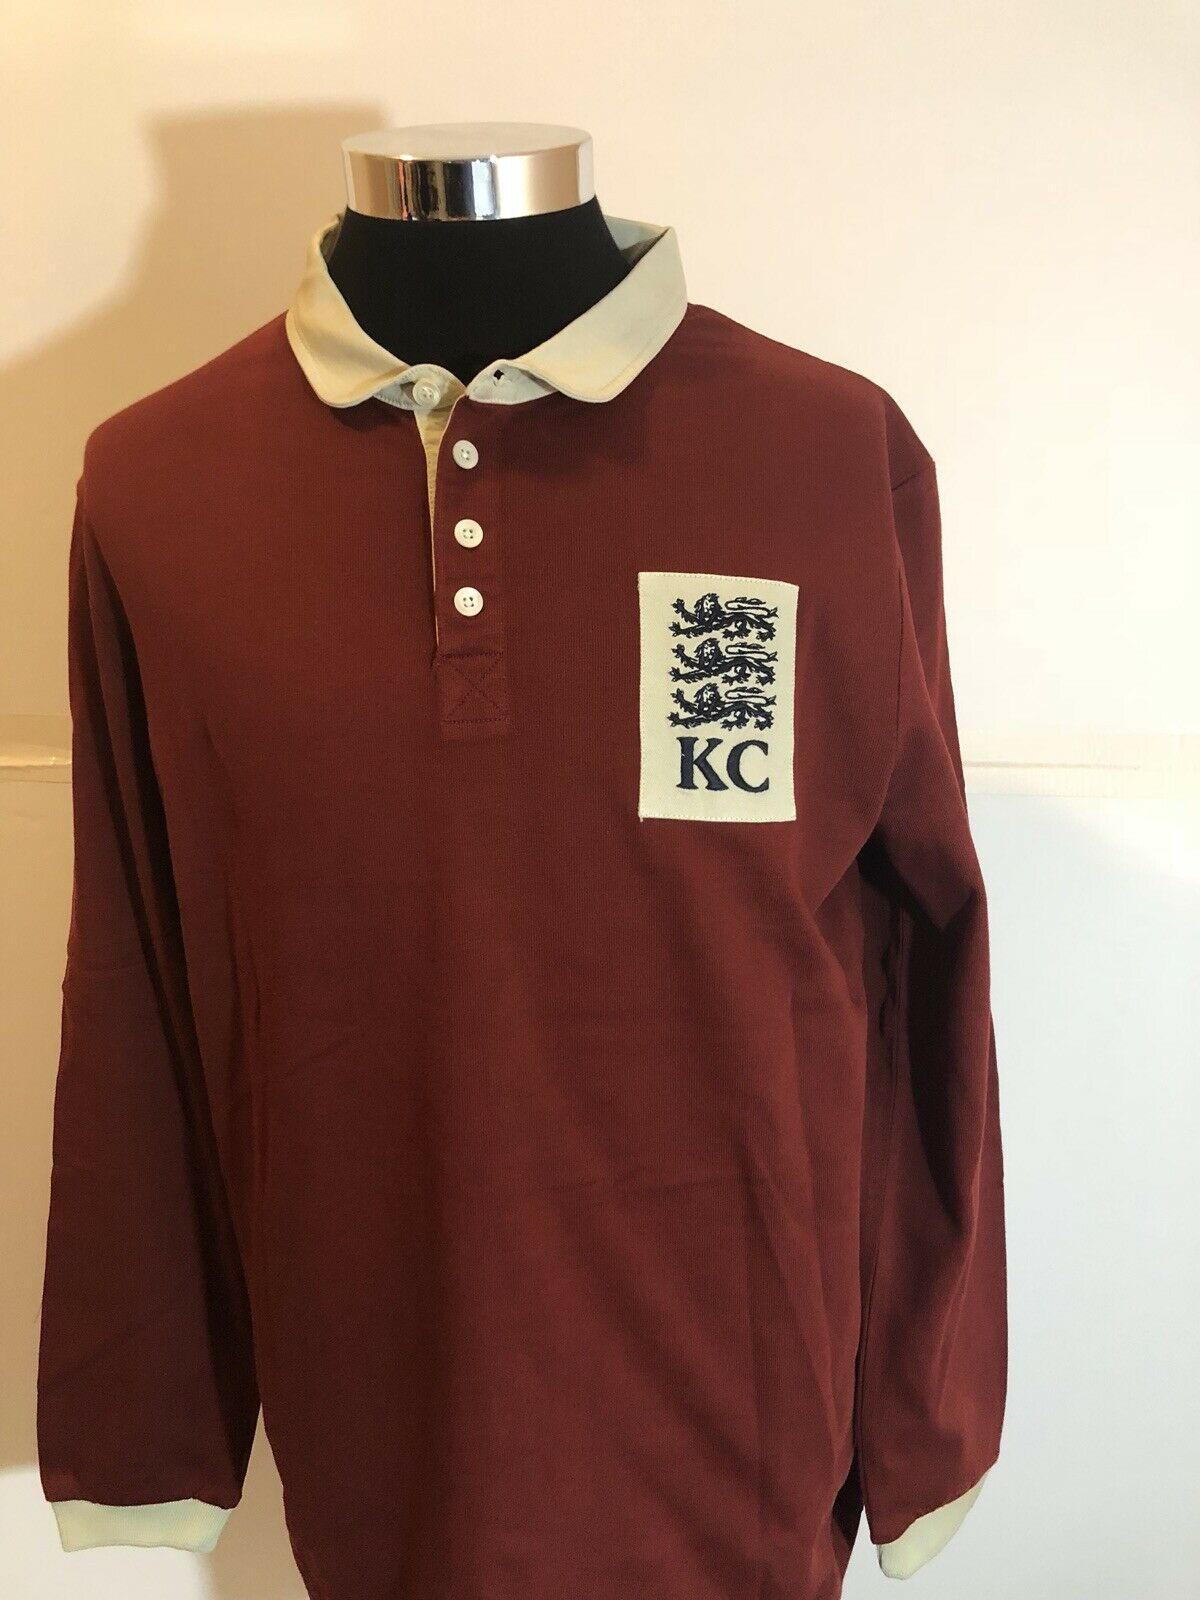 a04eae0a6 Kent   Curwen England Men Long Sleeve Polo Rugby Shirt XLarge Red White N2  c9c388